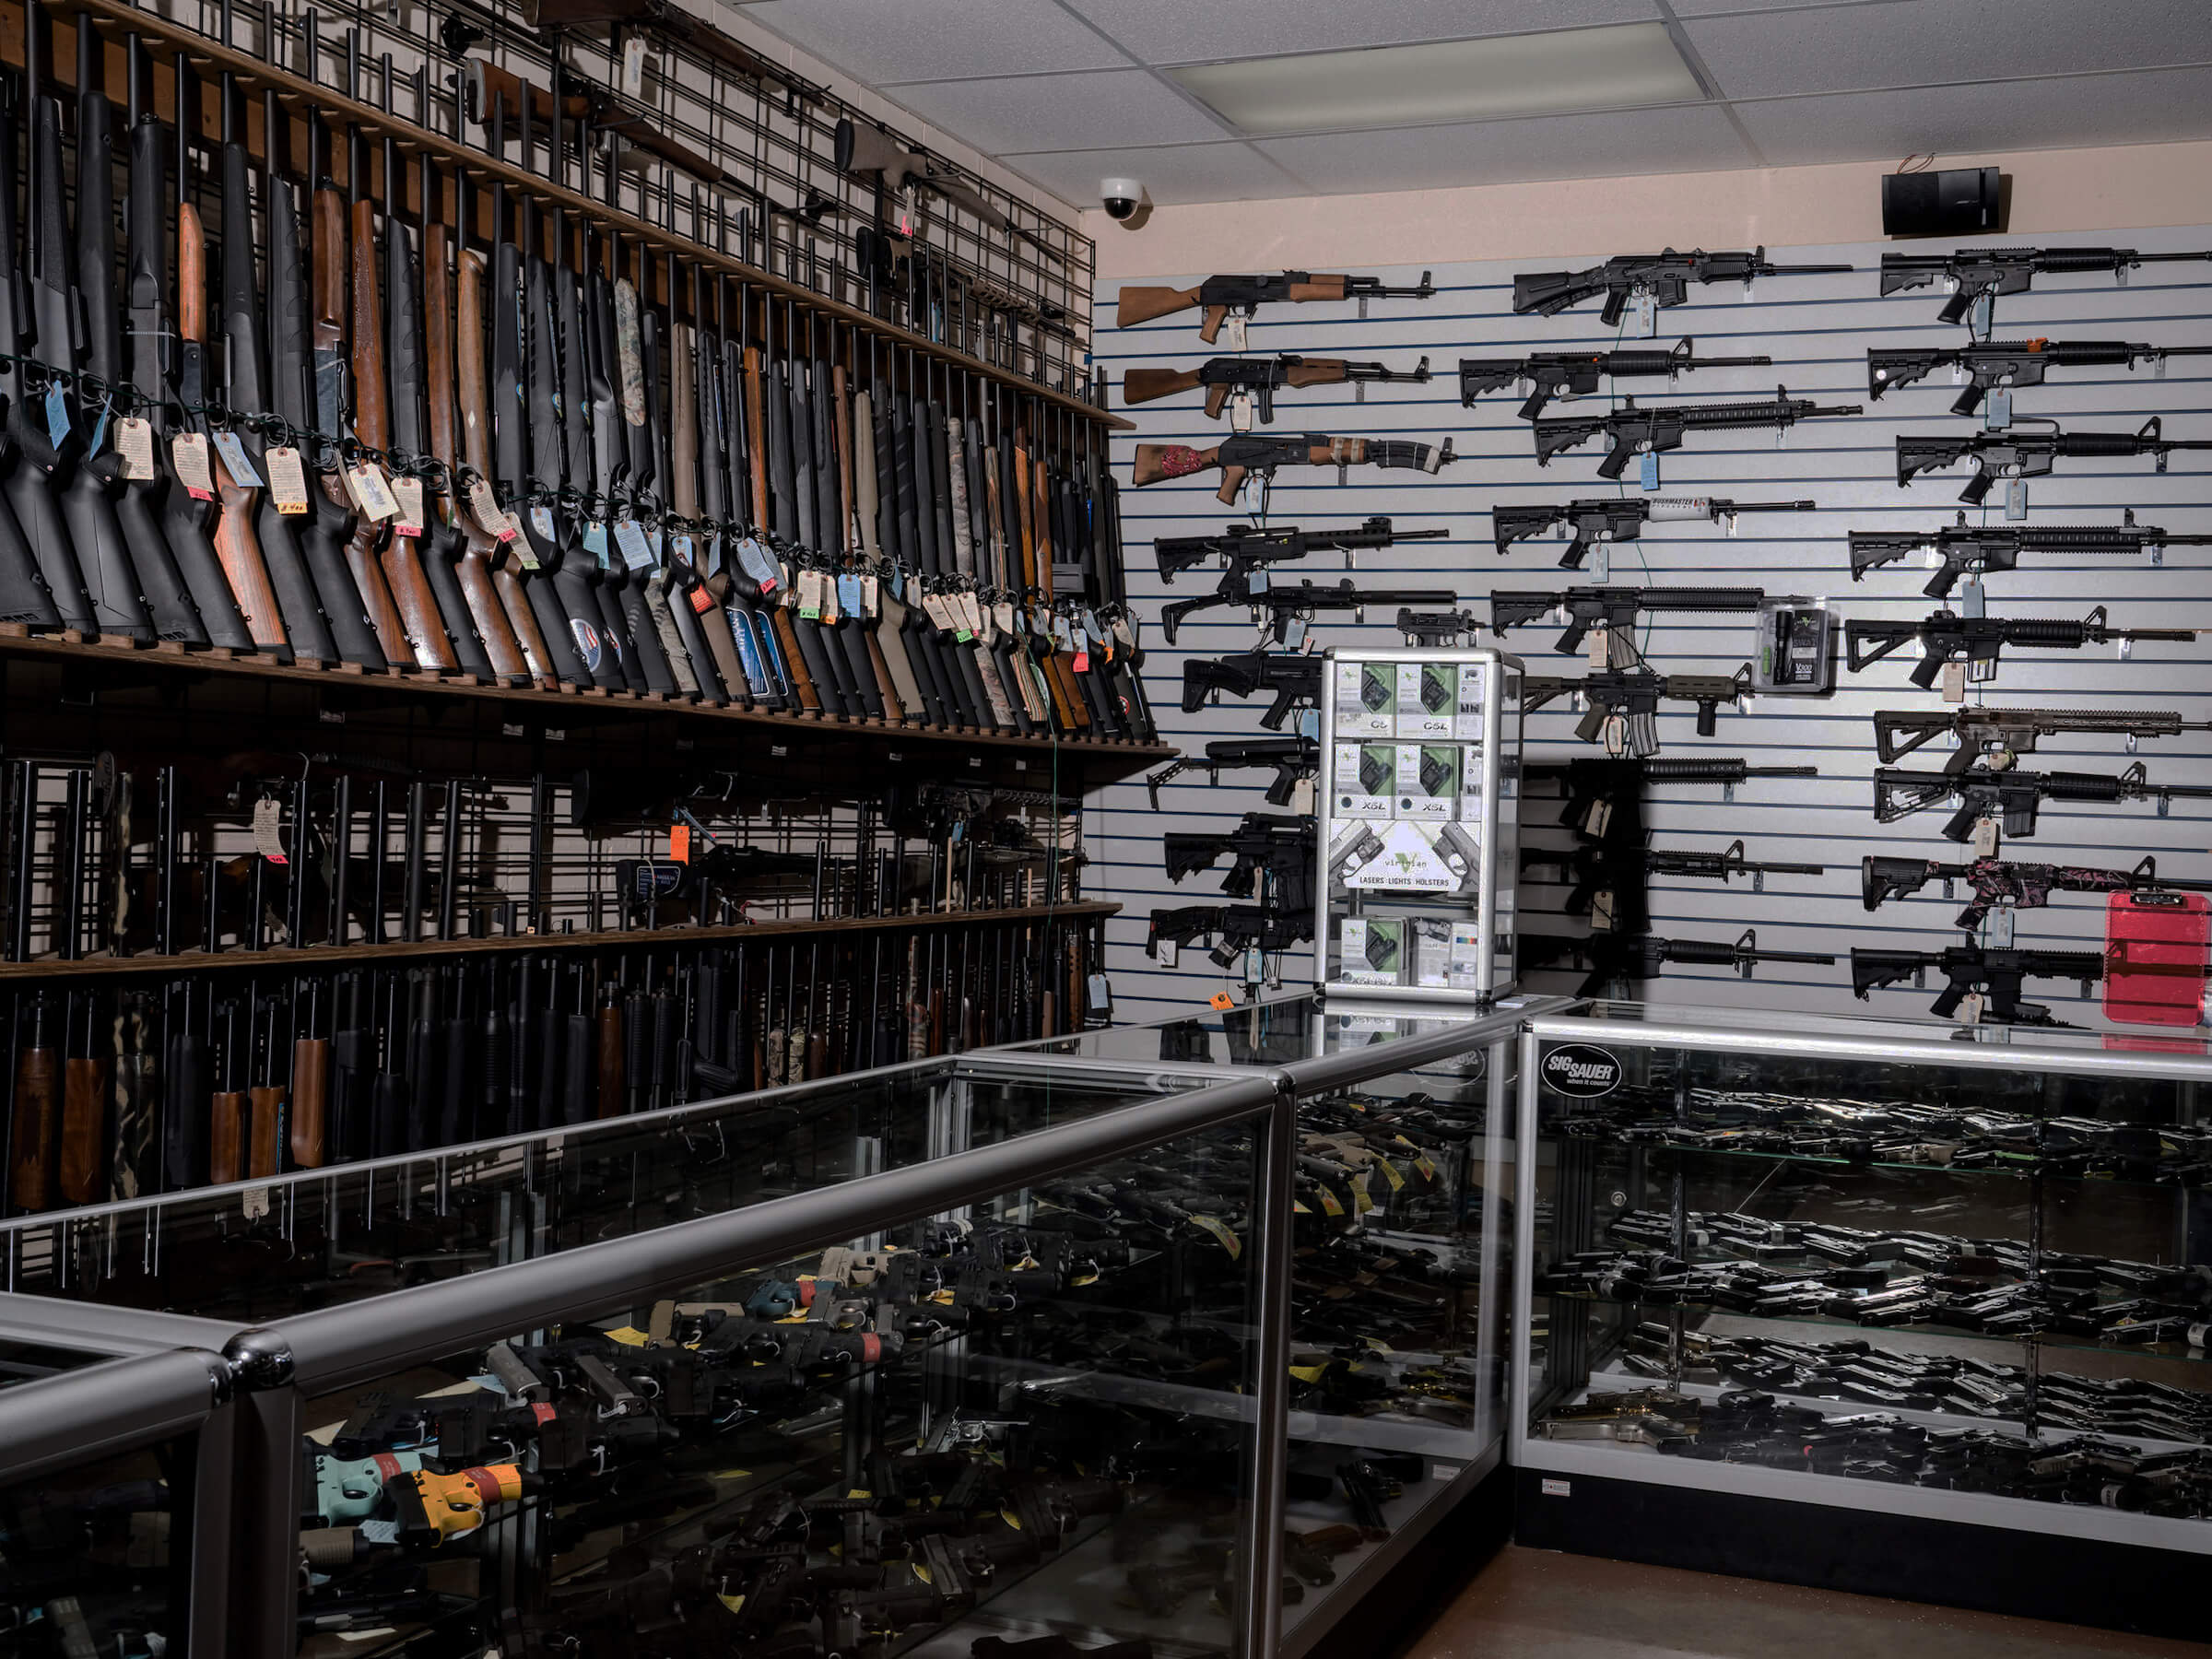 Prevalence of Gun Stores Linked to Higher Suicide Rates